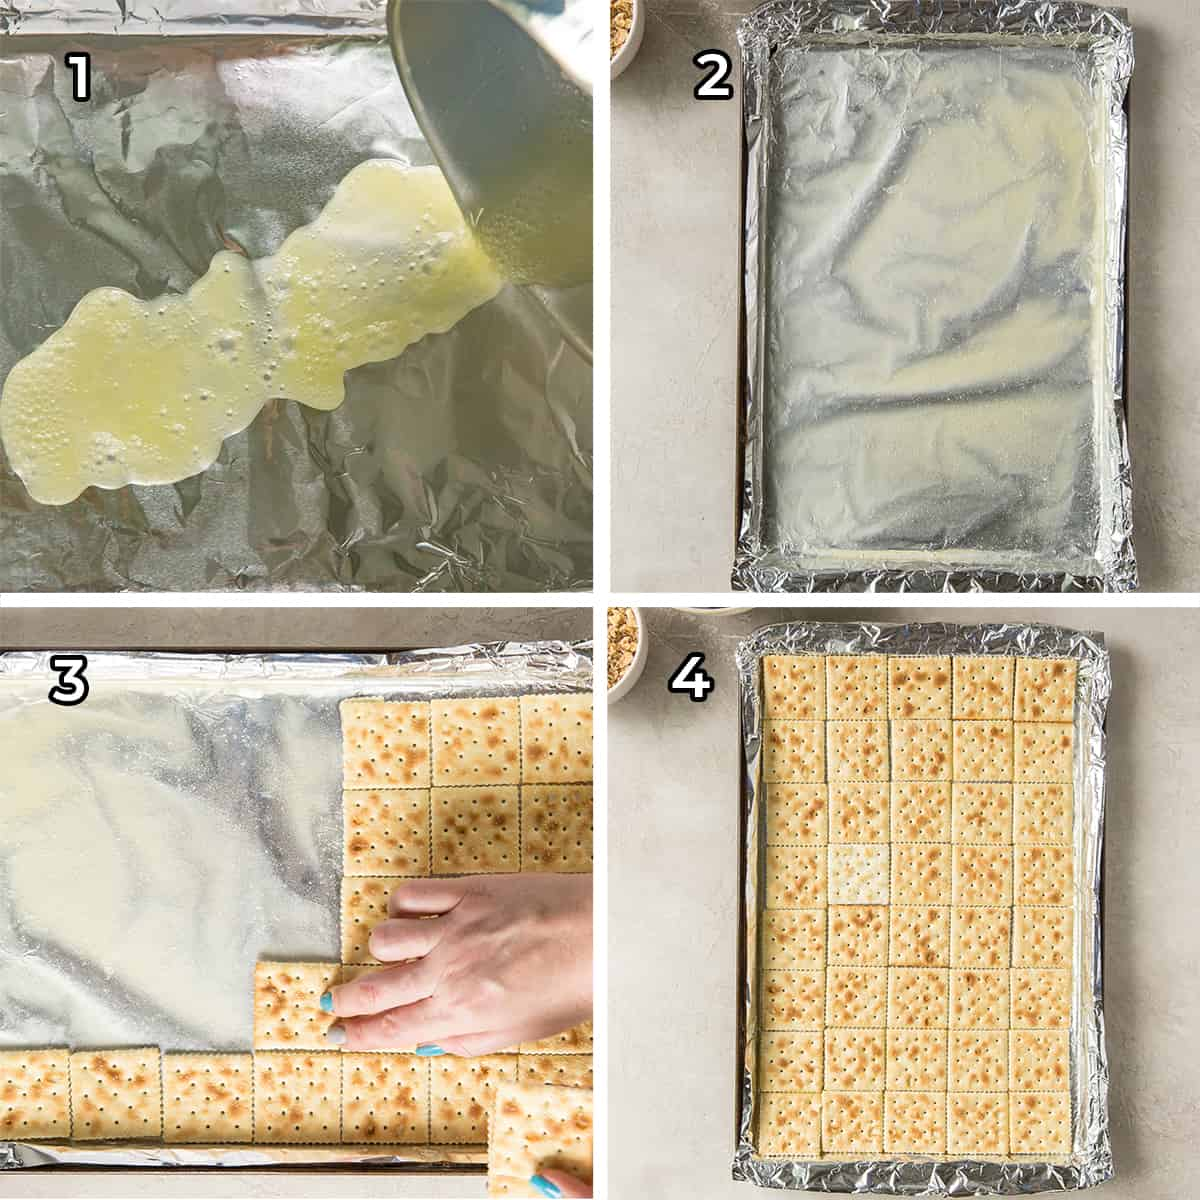 Melted butter and saltines on a foil lined baking sheet.